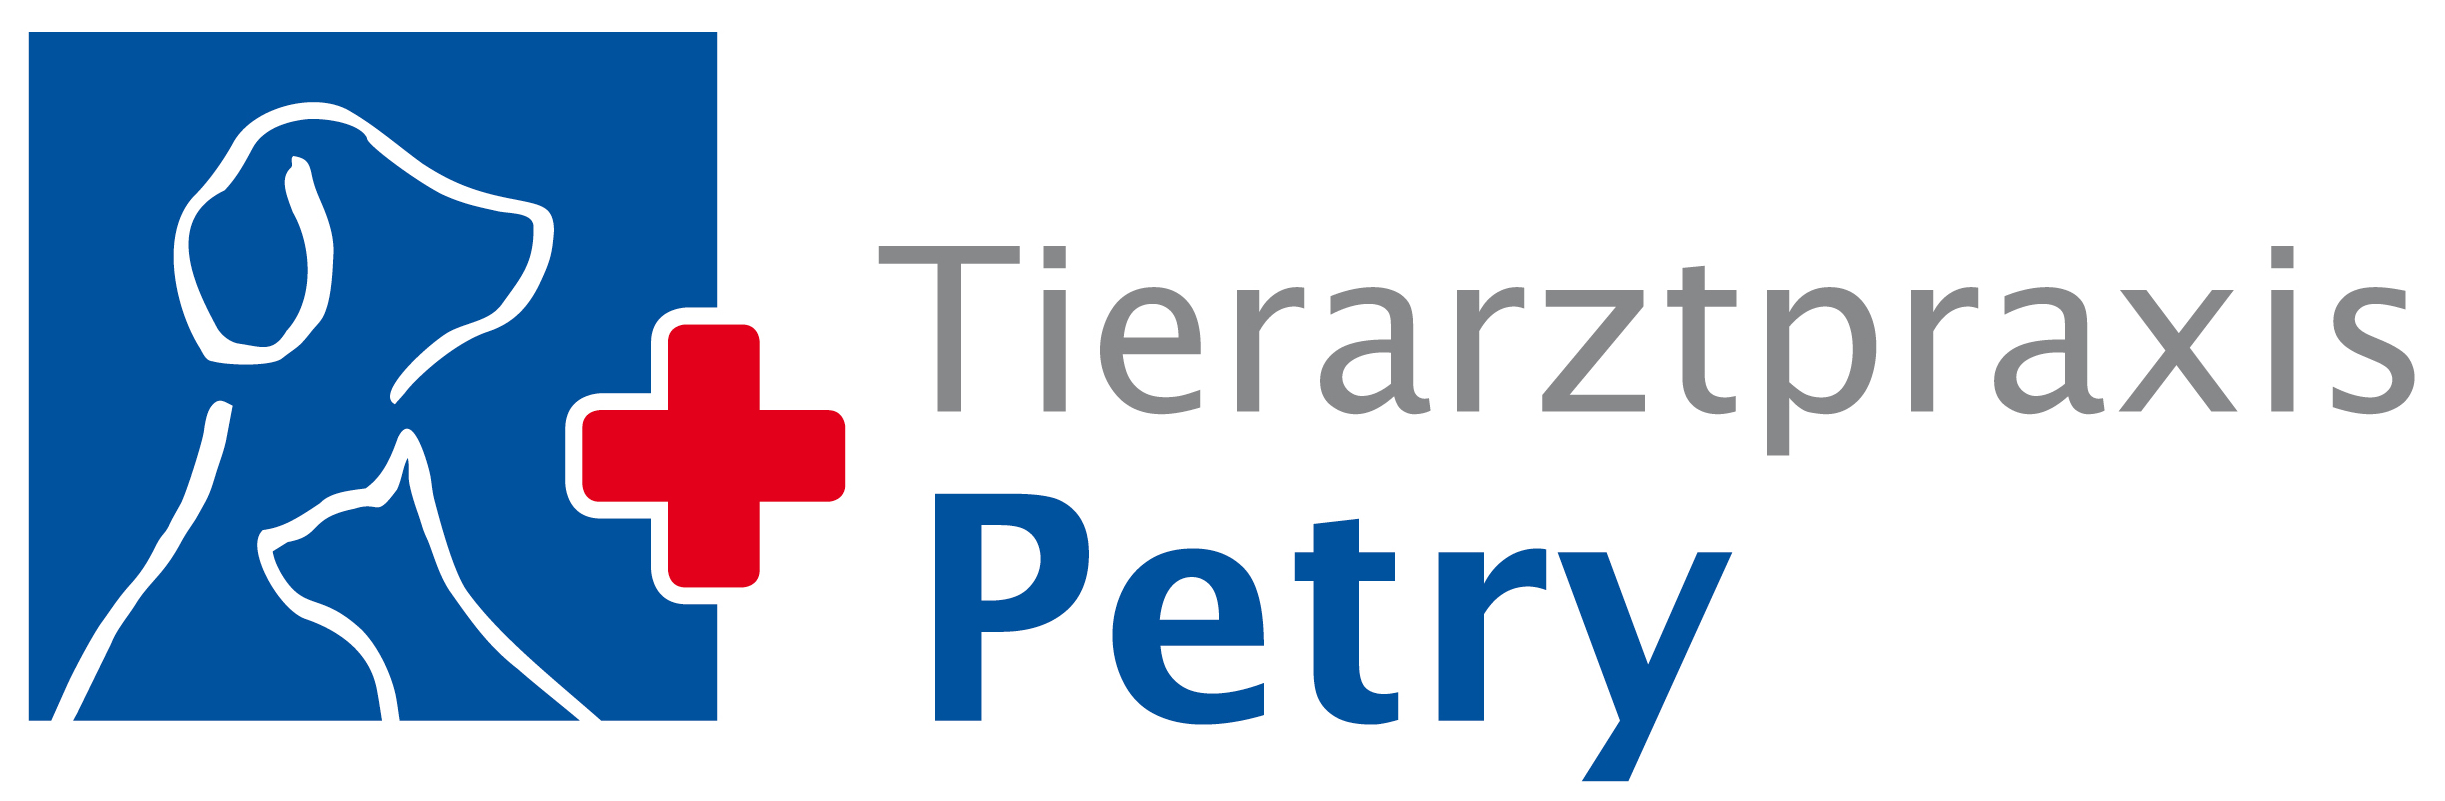 Tierarztpraxis Petry